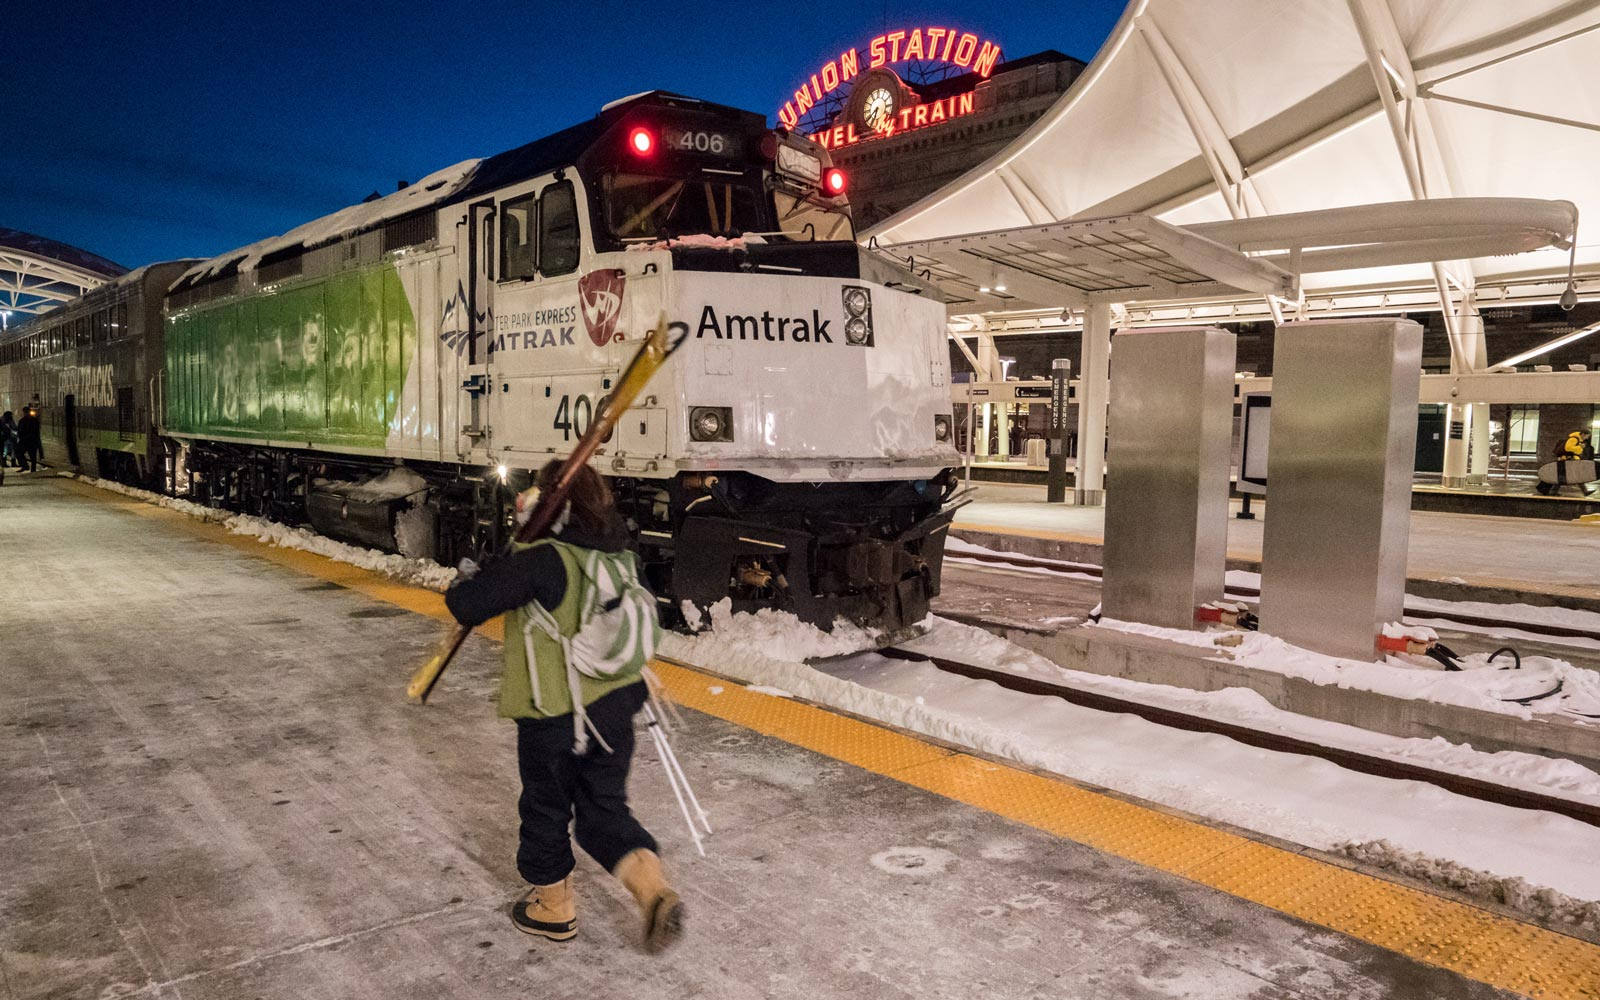 The Amtrak Winter Park train at Union Station